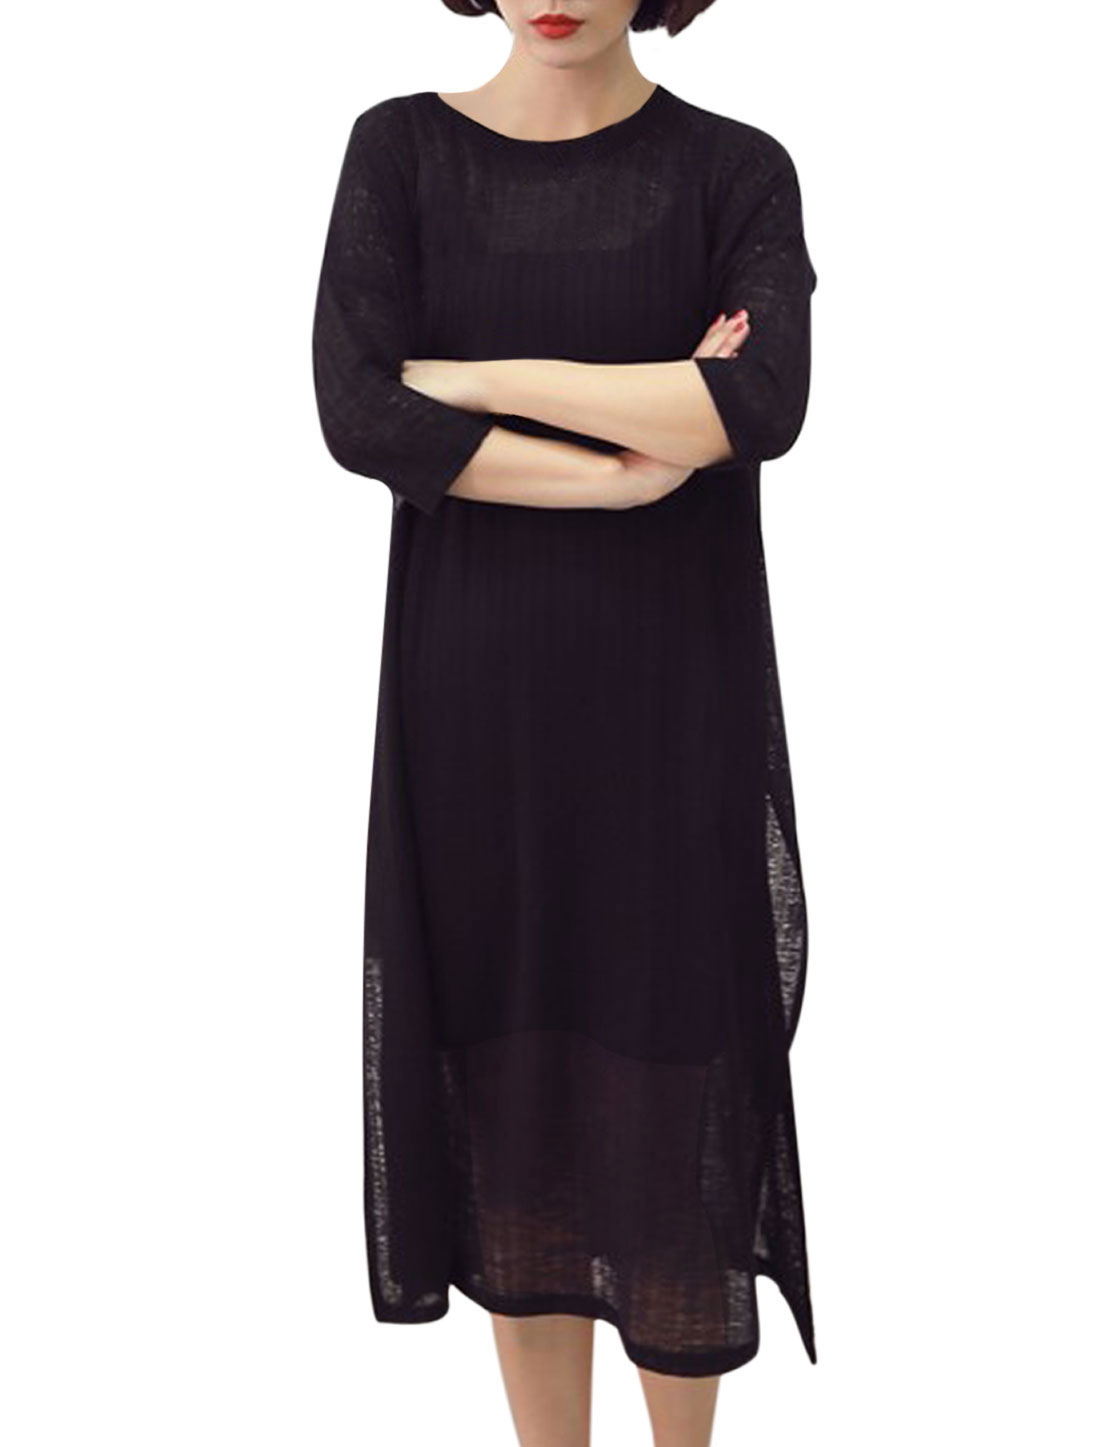 Women Fashion 3/4 Sleeve Side Split Shift Knit Dress Black XS